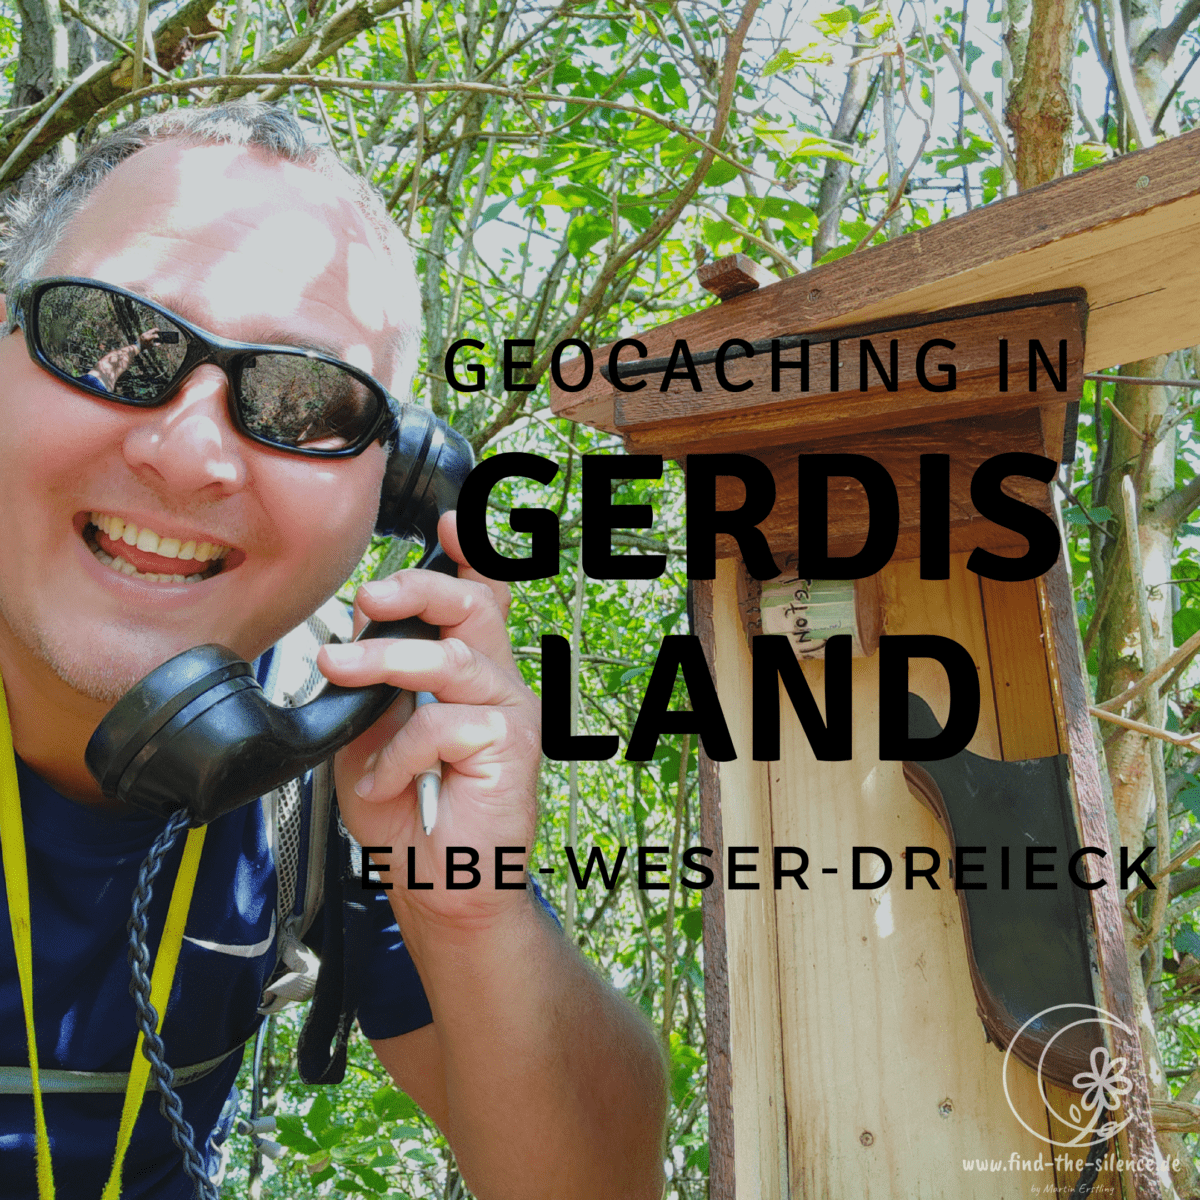 Geocaching in Gerdis Land